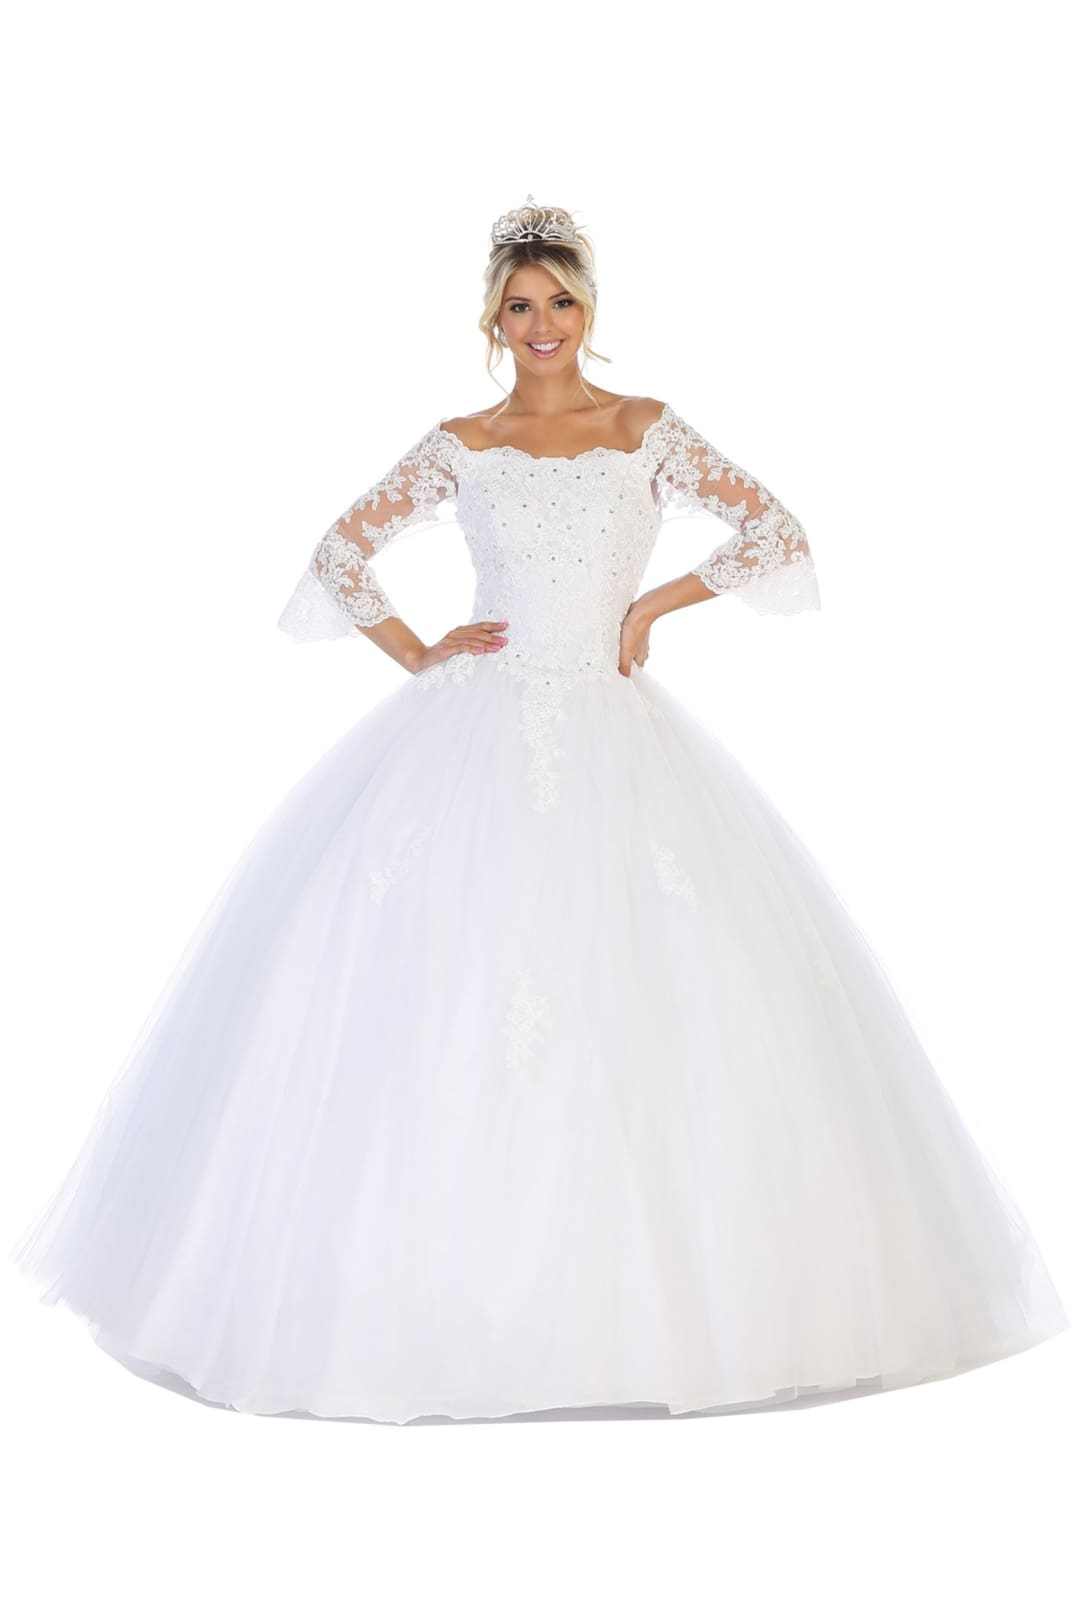 Off-Shoulder Bridal Ball Gown - White / 4